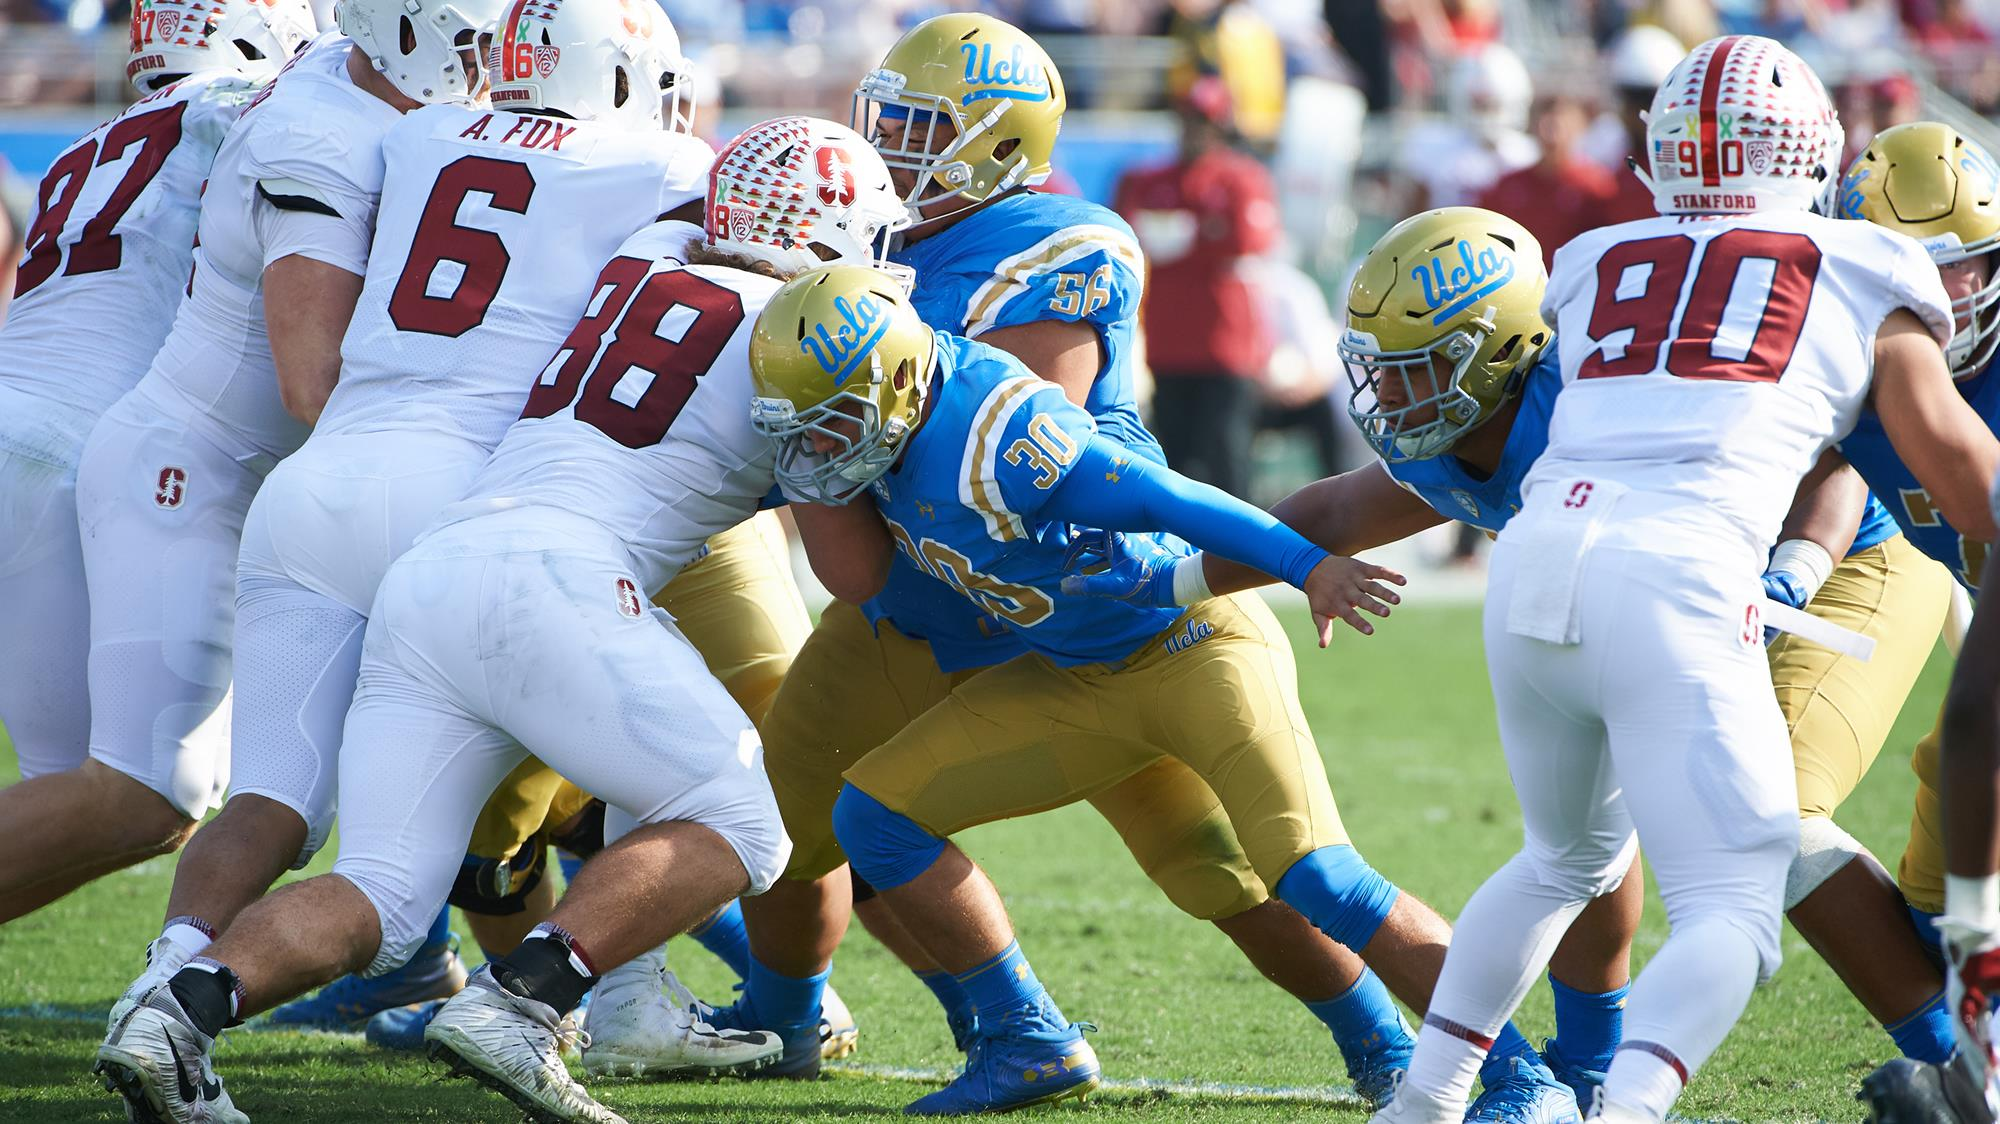 Den Bleyker Named To Long Snapper Award Watch List UCLA